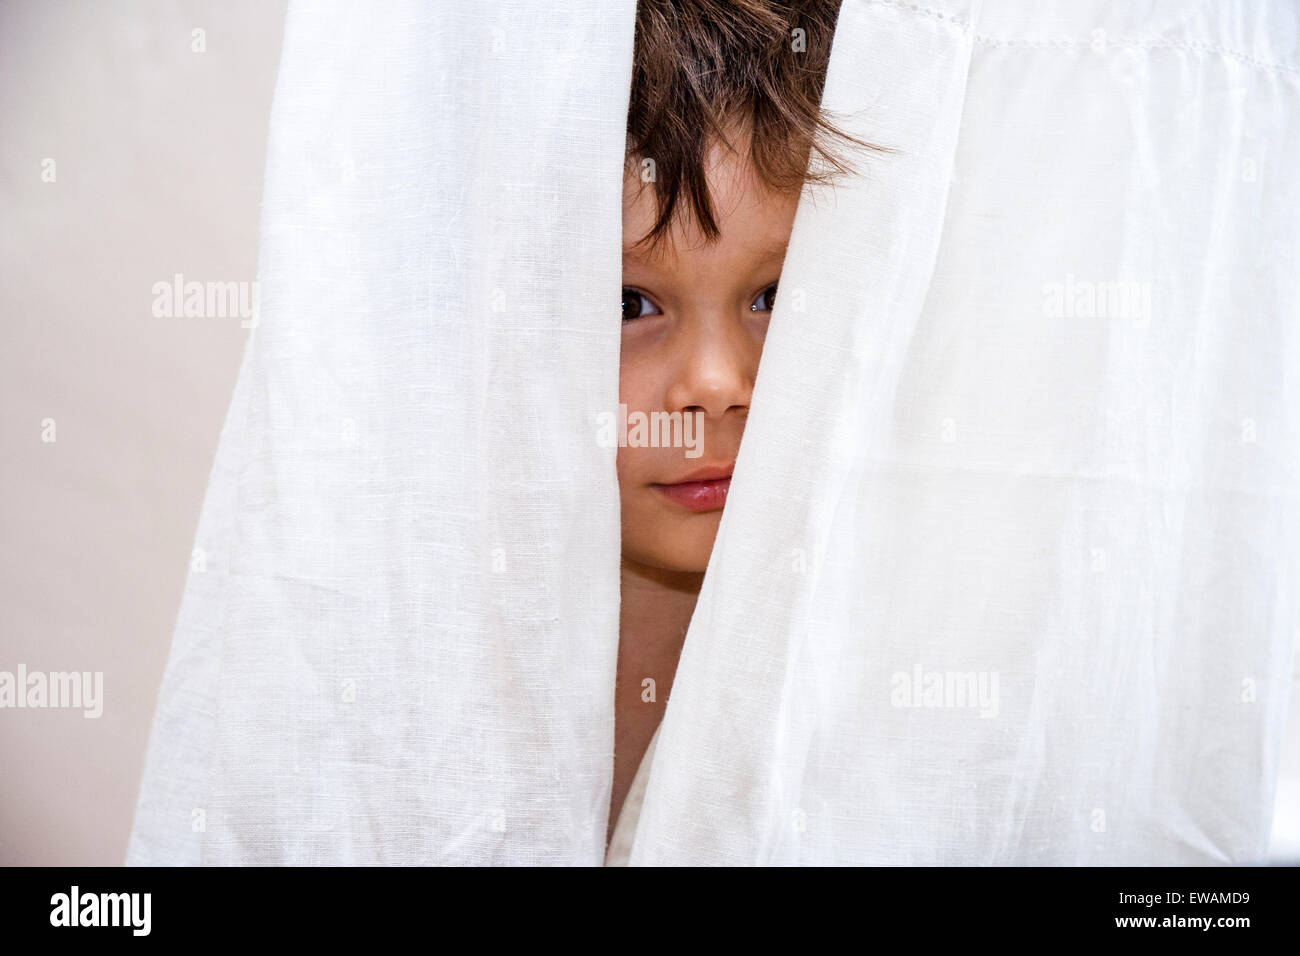 3 to 5 year old Caucasian boy. Indoors. Face poking out through net curtains, ruffled hair. Facing - Stock Image